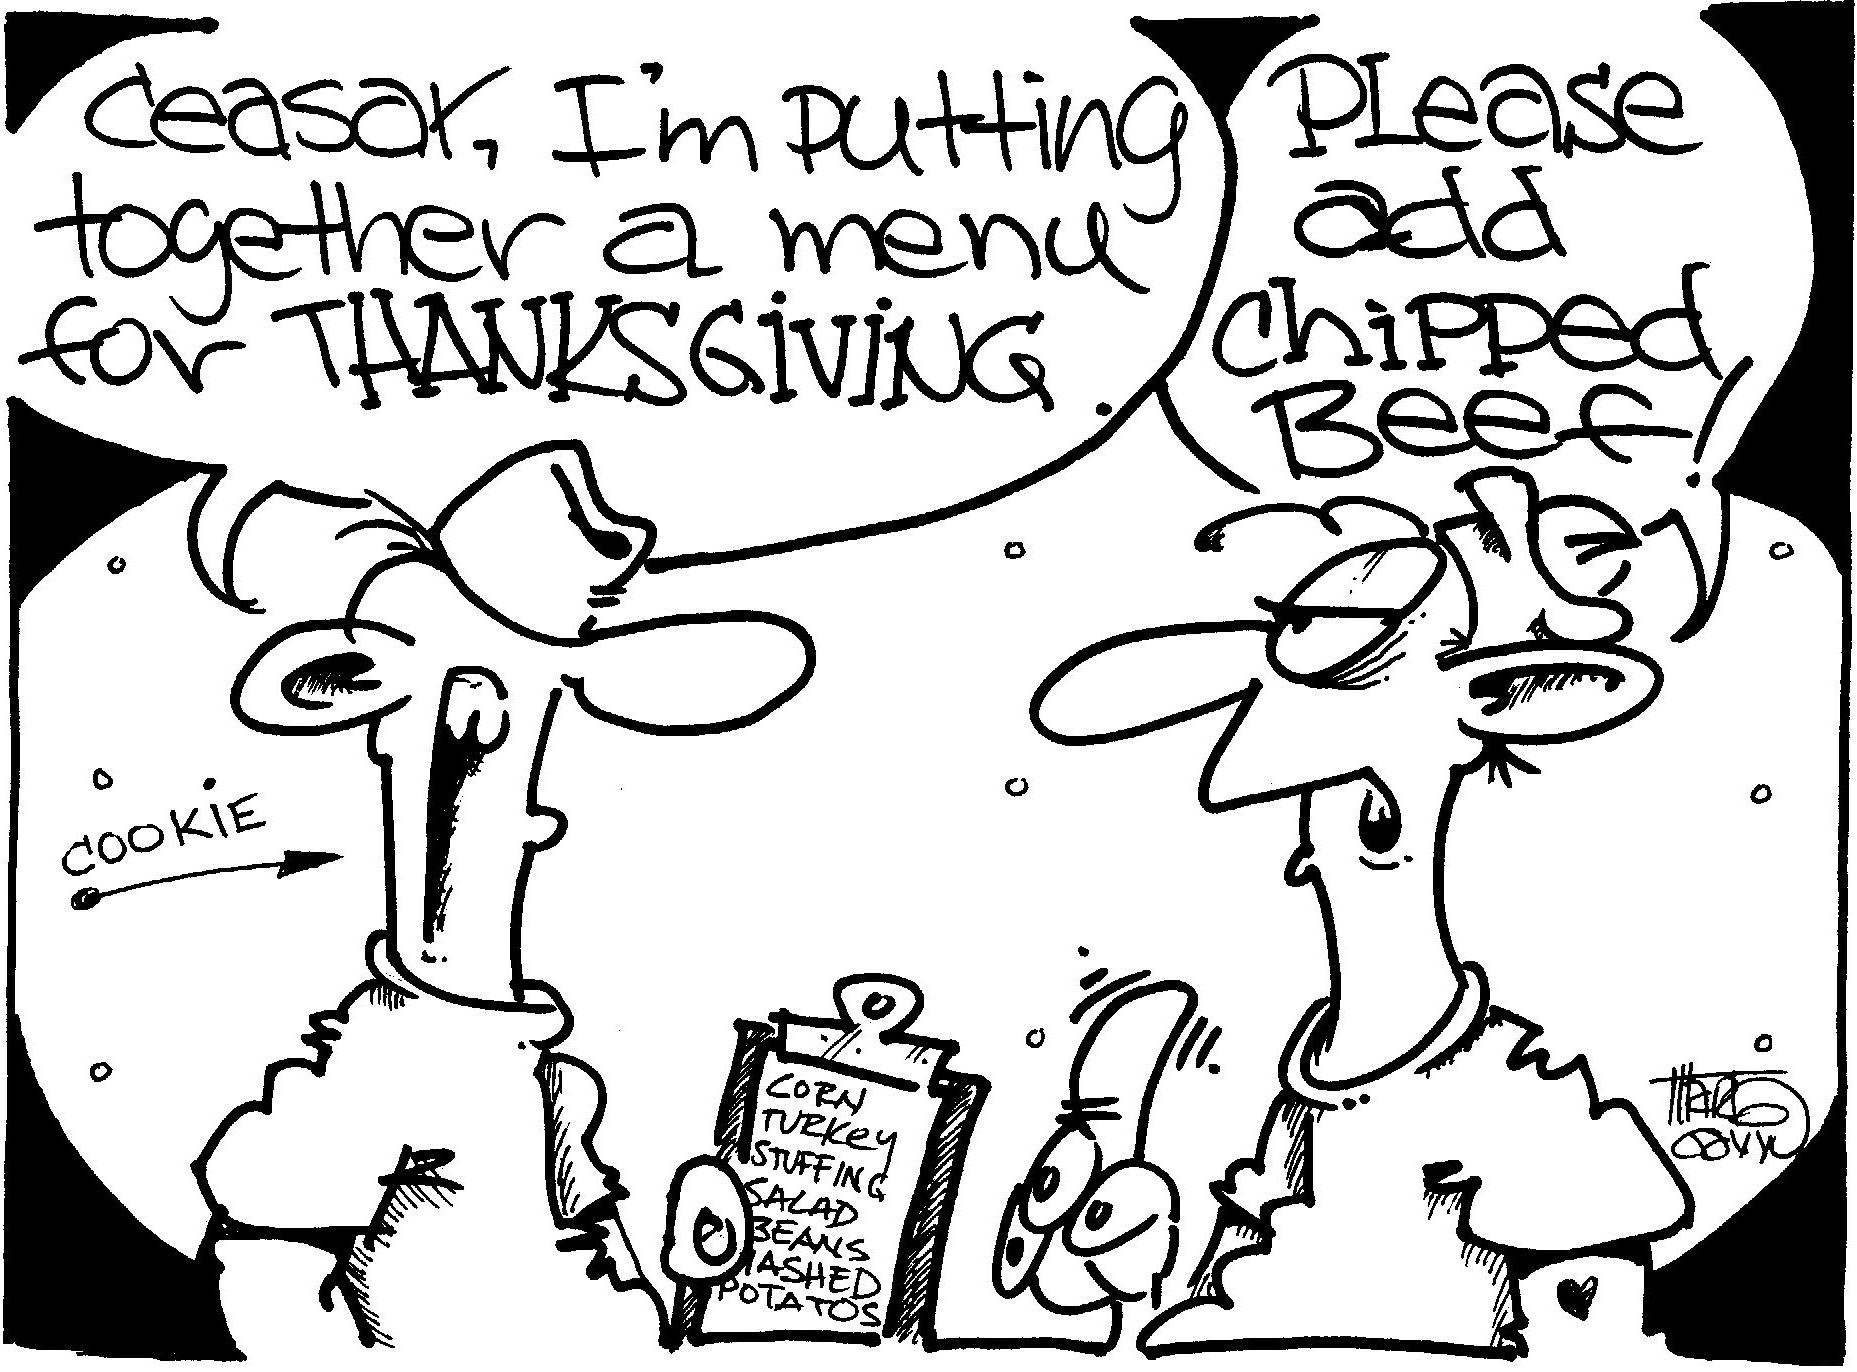 "Putting together the Thanksgiving menu ""© CEASAR CHOPPY"" by Marty Gavin"